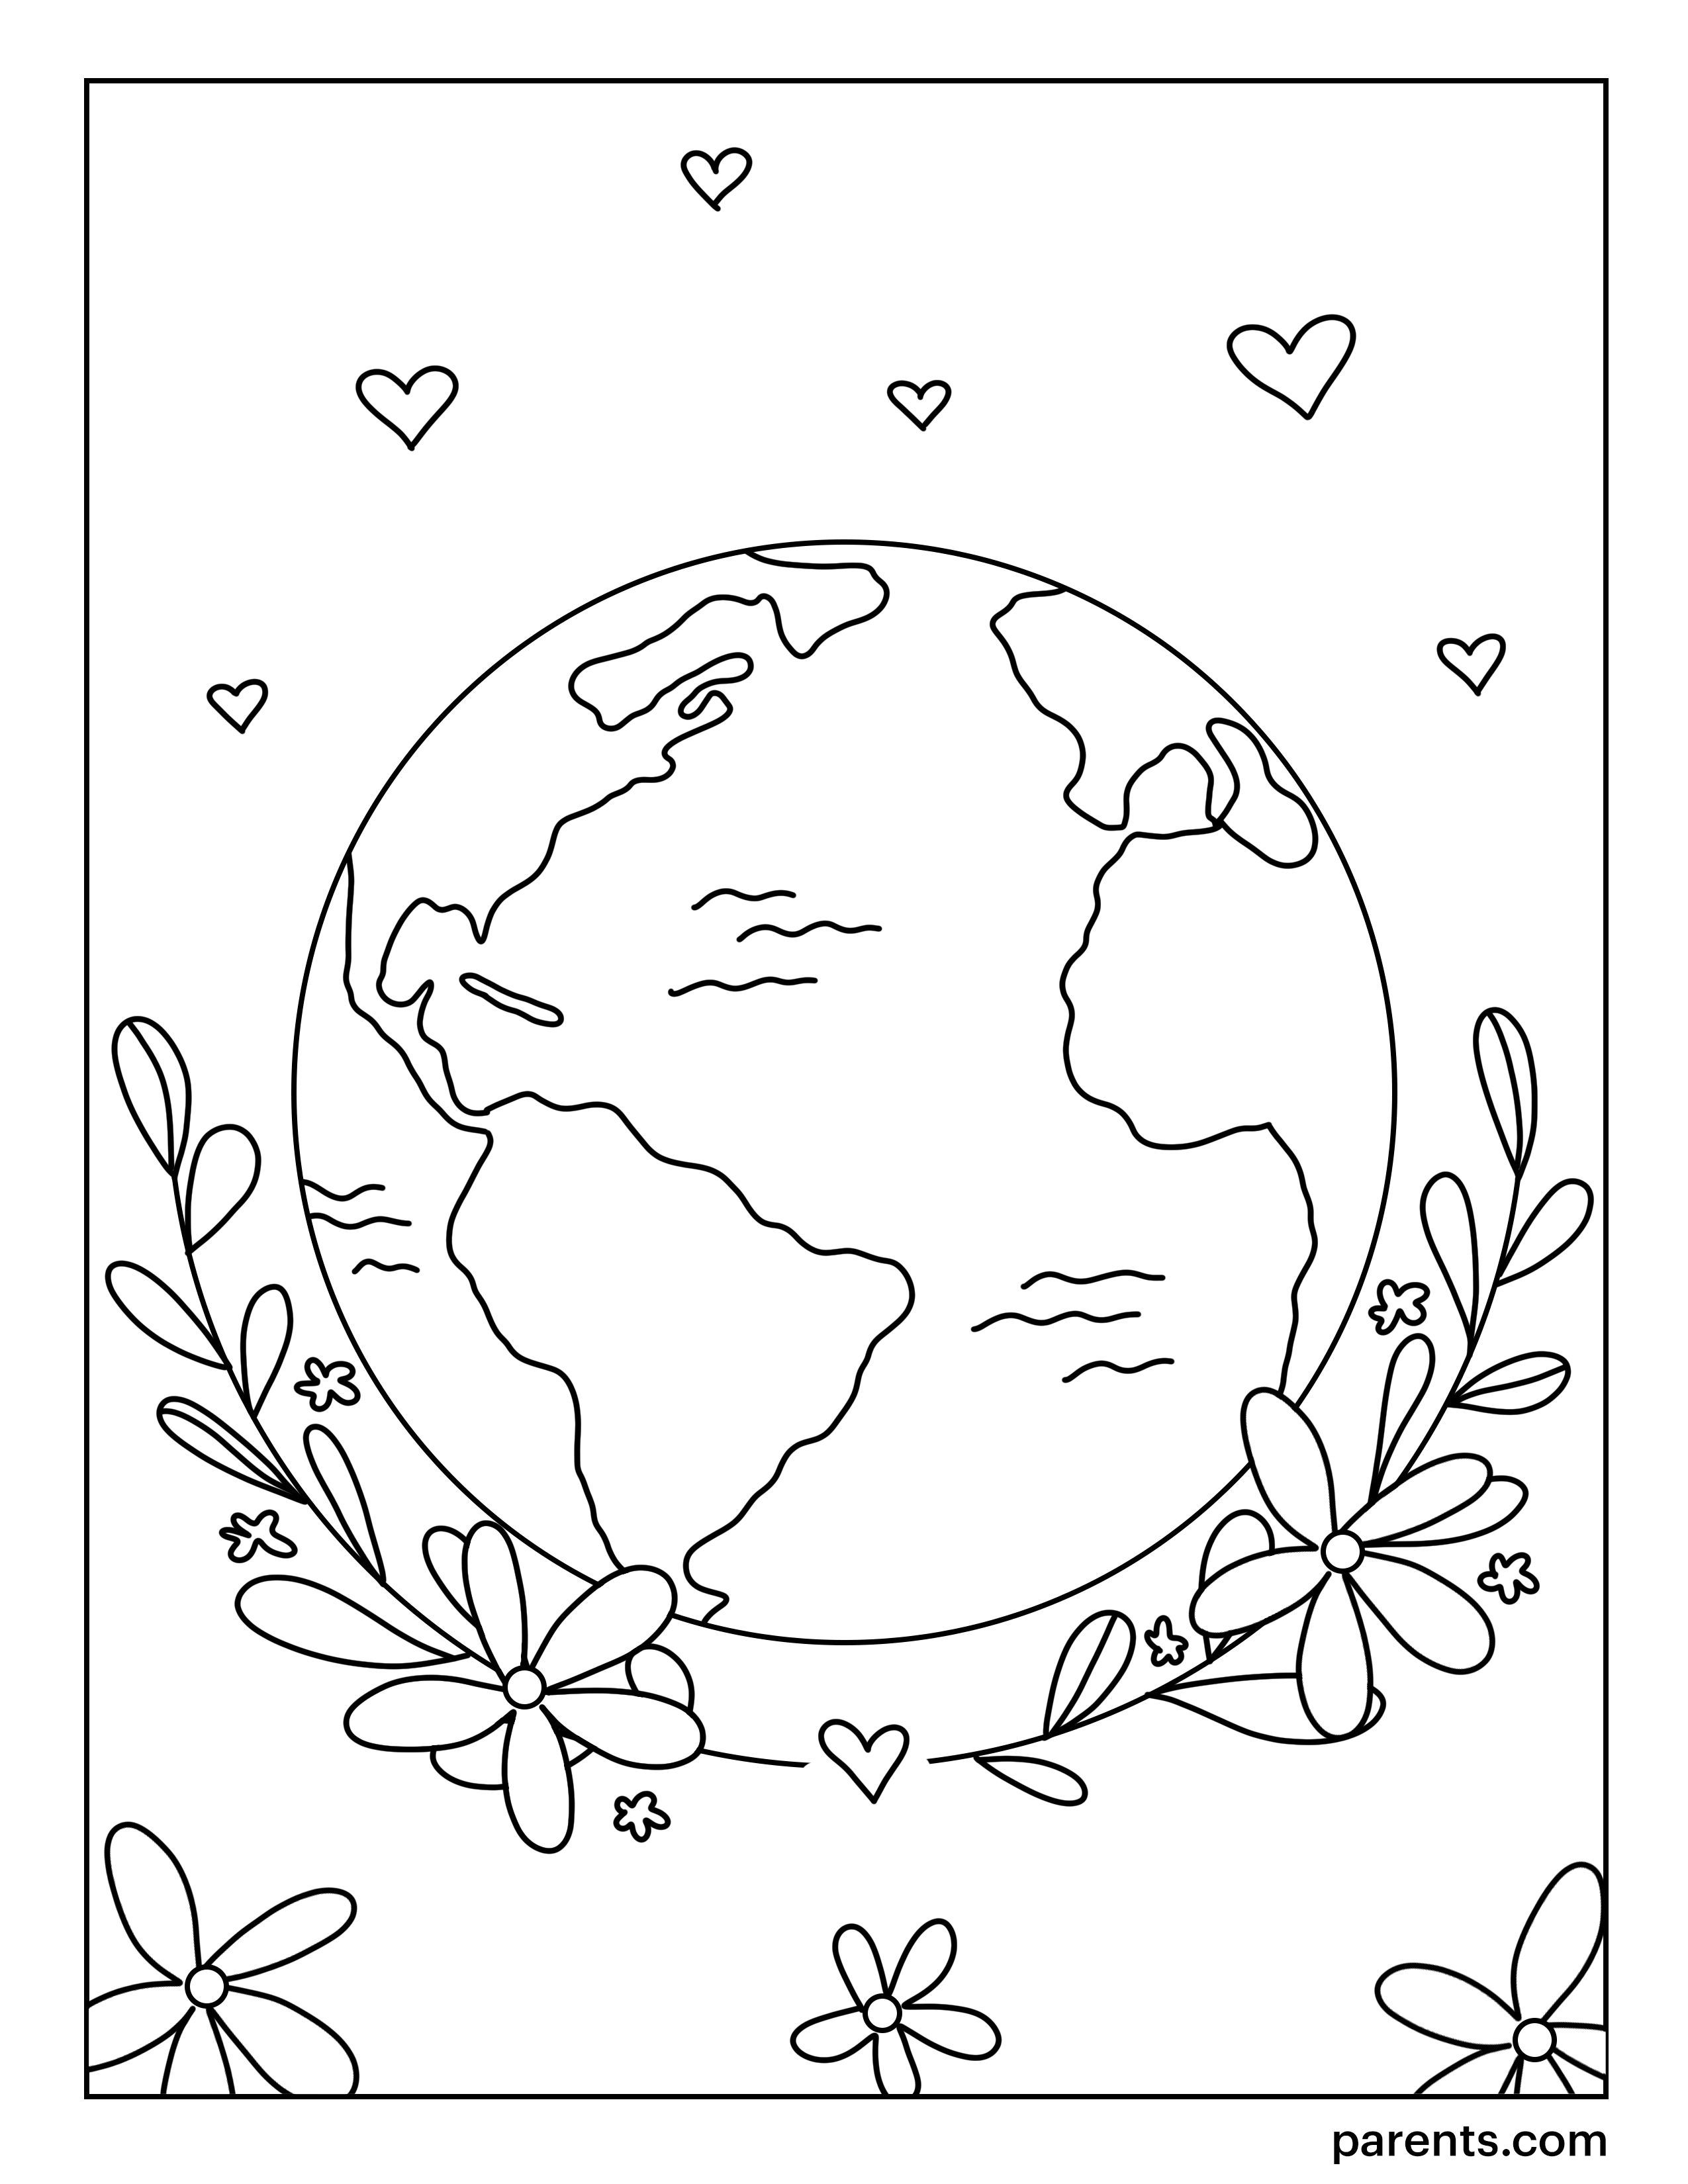 earth day coloring pictures 27 earth day coloring page background survival raidcom day earth pictures coloring